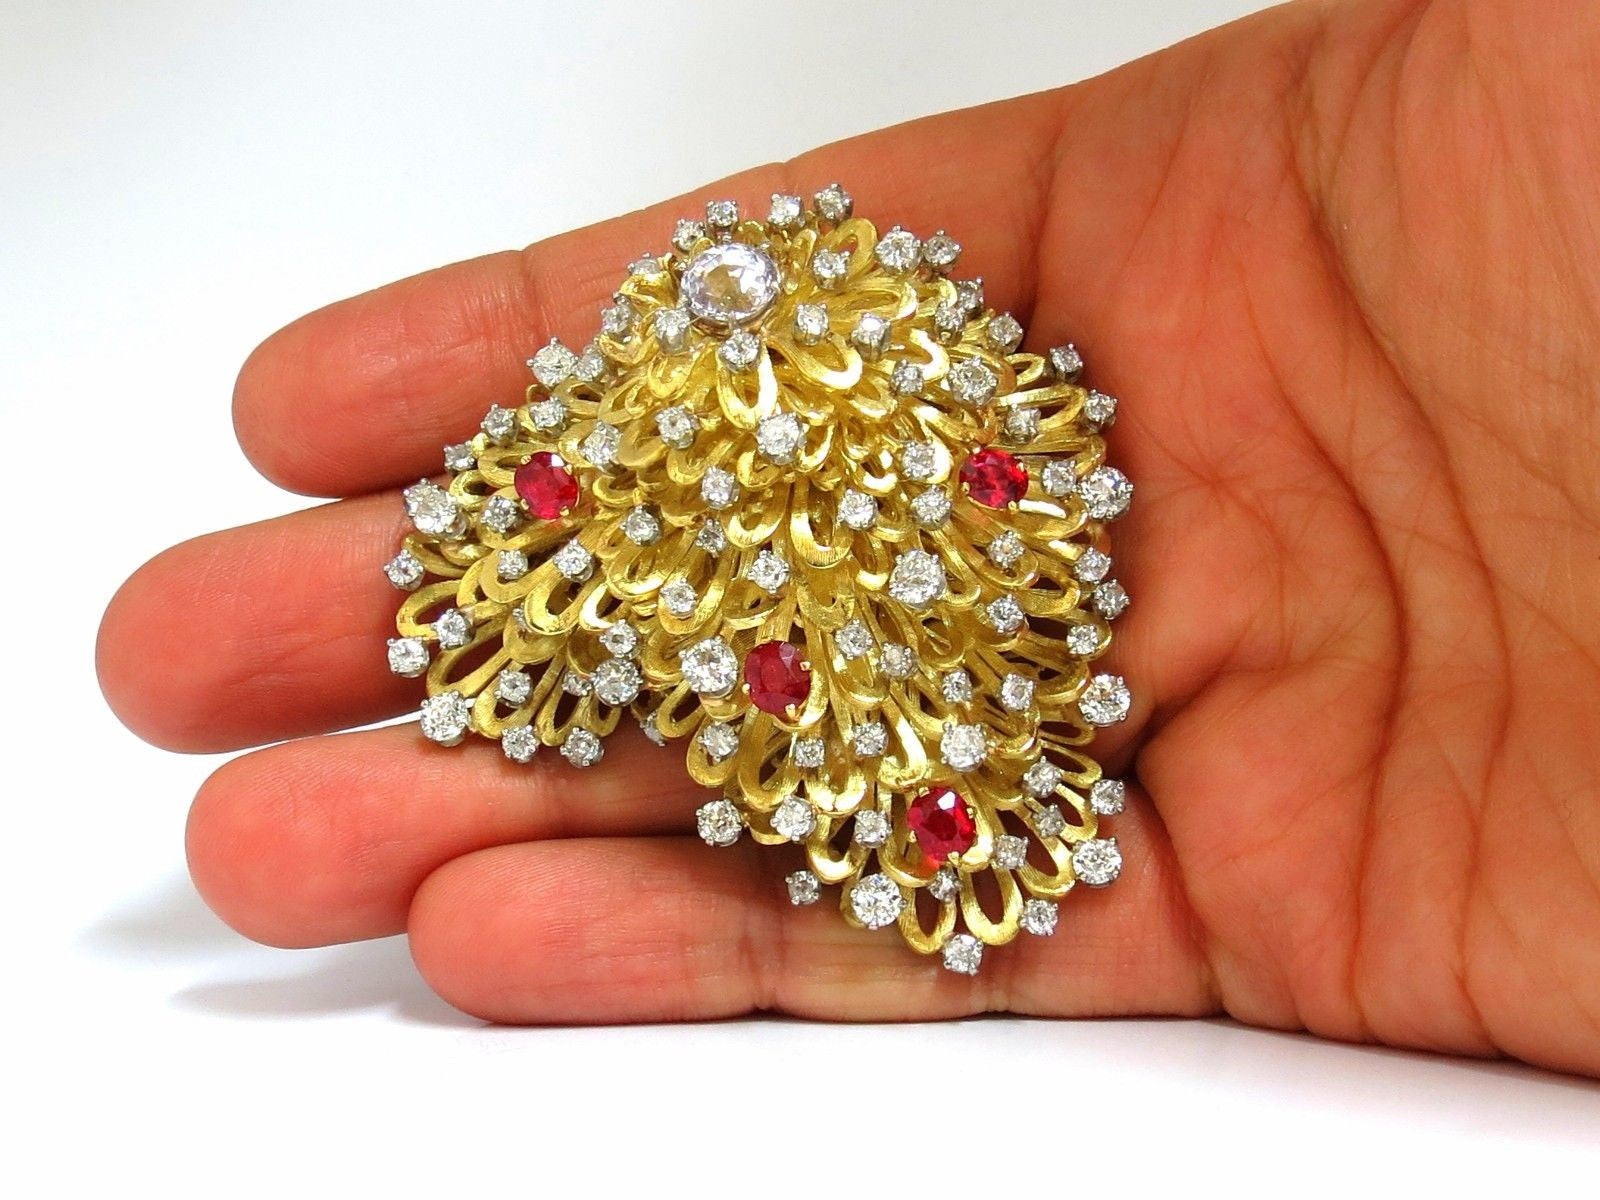 ERWIN PEARL 8.00ct. NATURAL DIAMONDS & RED SPINEL BROOCH PIN 18KT